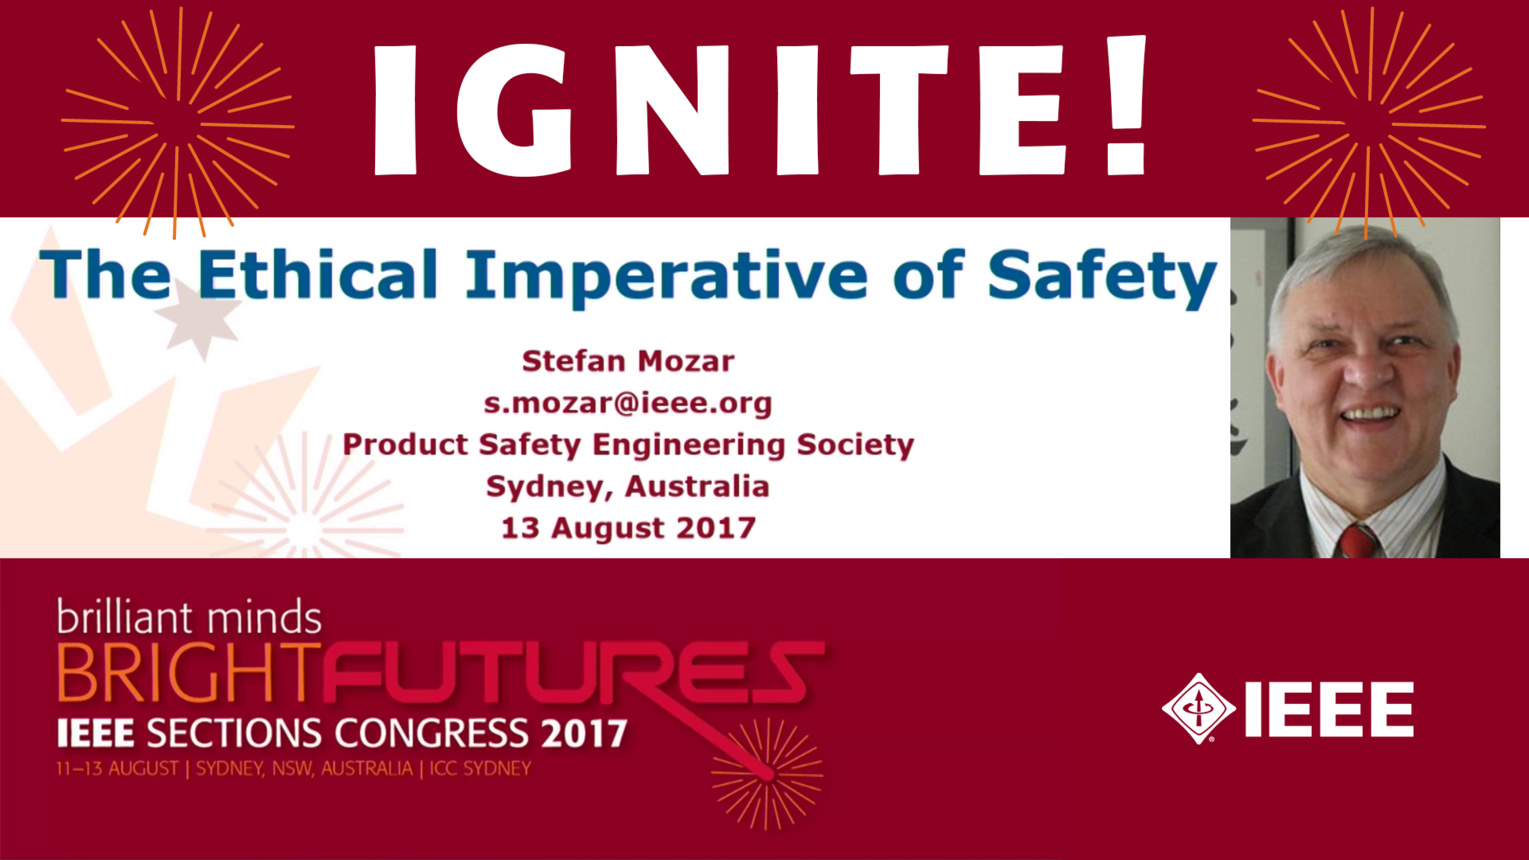 The Ethical Imperative of Safety - Stefan Mozar - Ignite: Sections Congress 2017